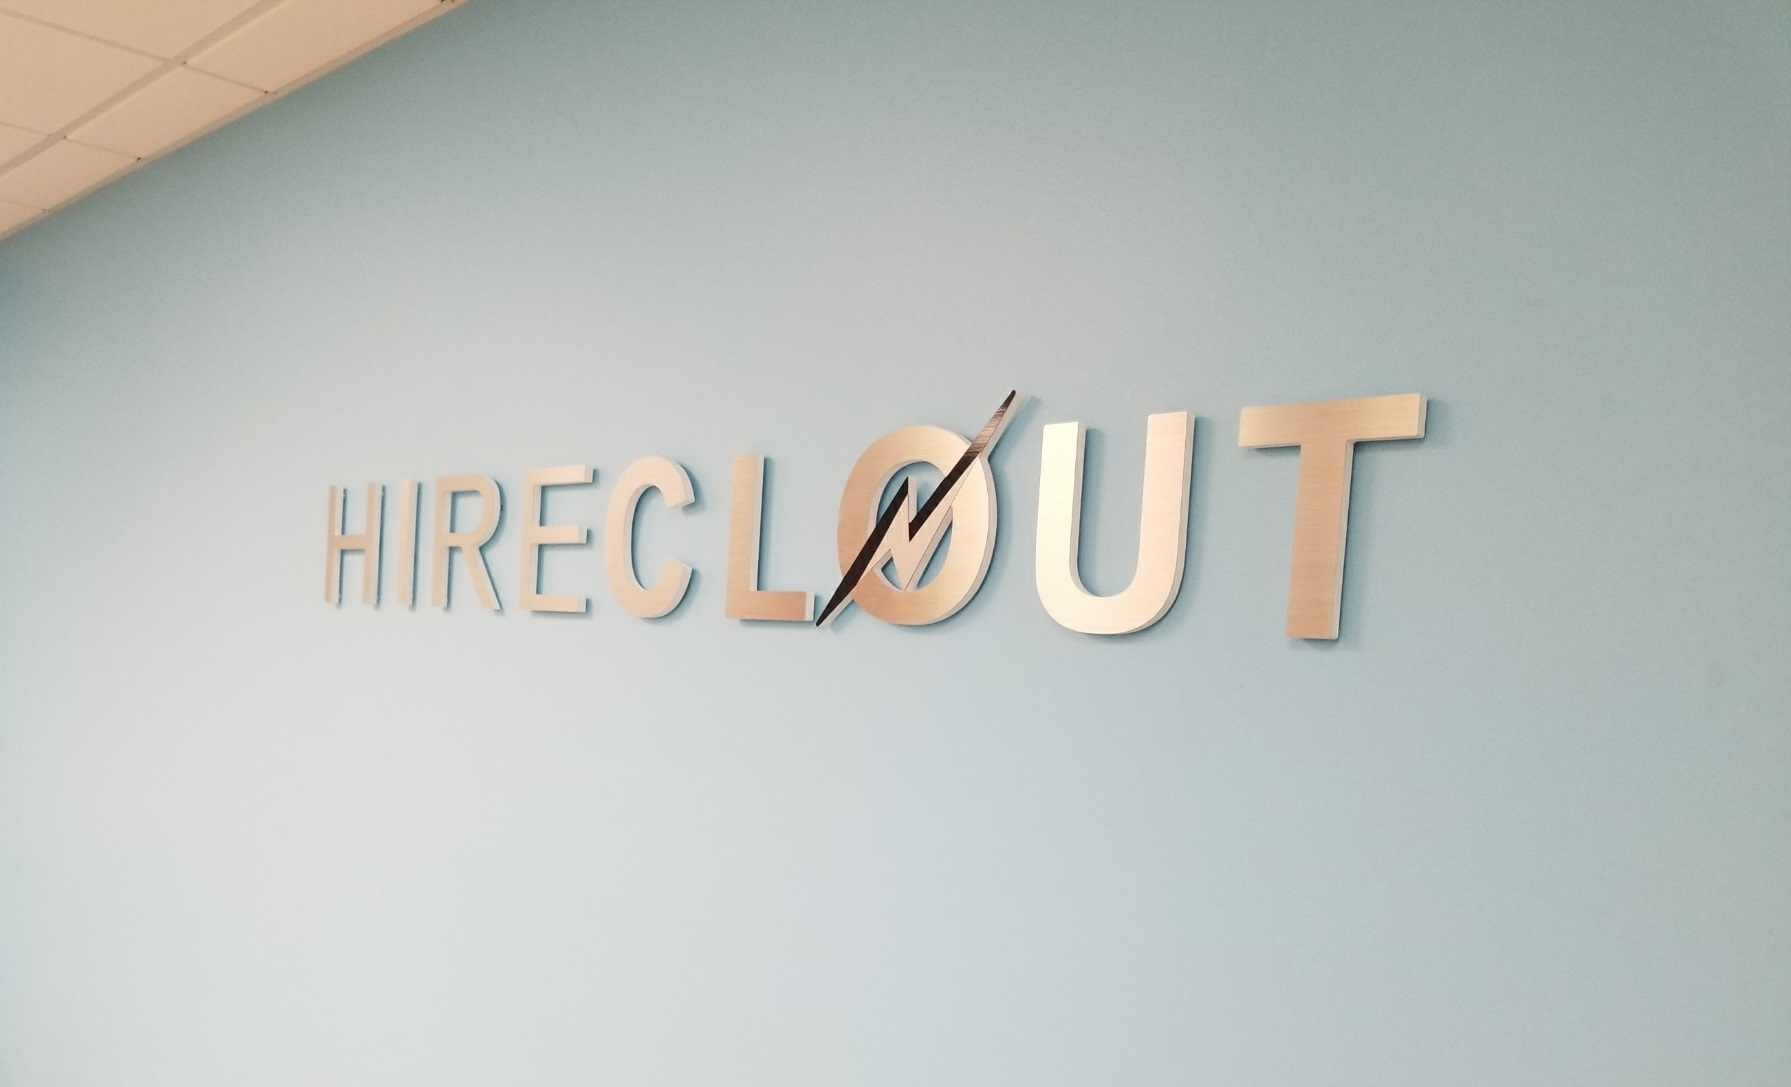 dimensional letters, Lobby sign, reception area sign, front desk sign, metal logo sign, dimensional letter lobby sign, indoor sign, interior sign, business sign, , reception sign, business signage, sign and banner company near me, sign companies, sign company near me, sign making, sign resource and like companies, signs for sale for business, commercial real estate signs, california sign interior company, classic office signs, company logo wall sign, conference room in use signs for offices, acrylic sign, dimensional sign, dimensional acrylic sign, sign logo, office signage ideas, office suite signs